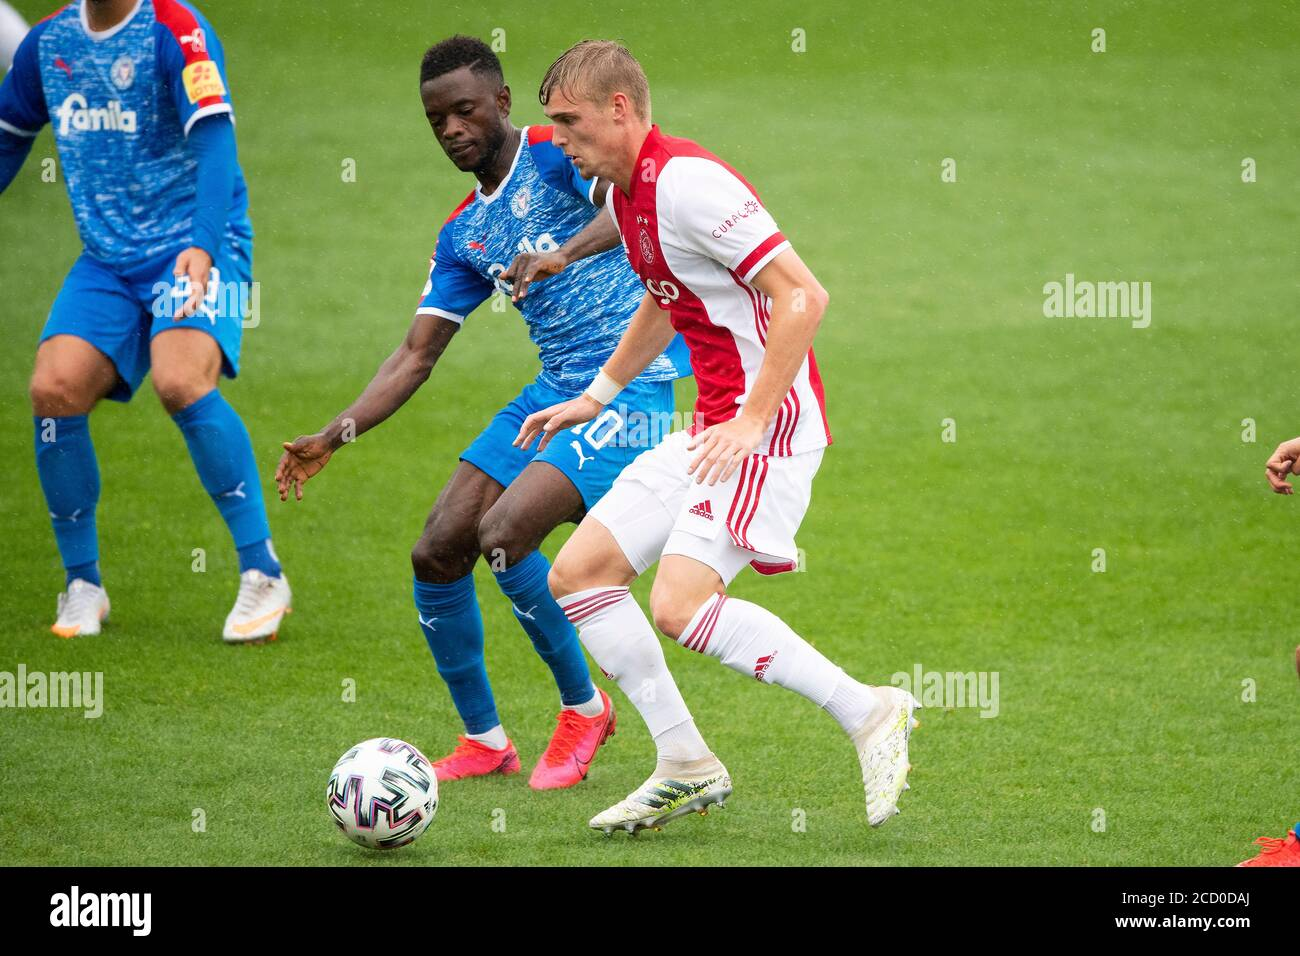 David Atanga Holstein Kiel High Resolution Stock Photography And Images Alamy